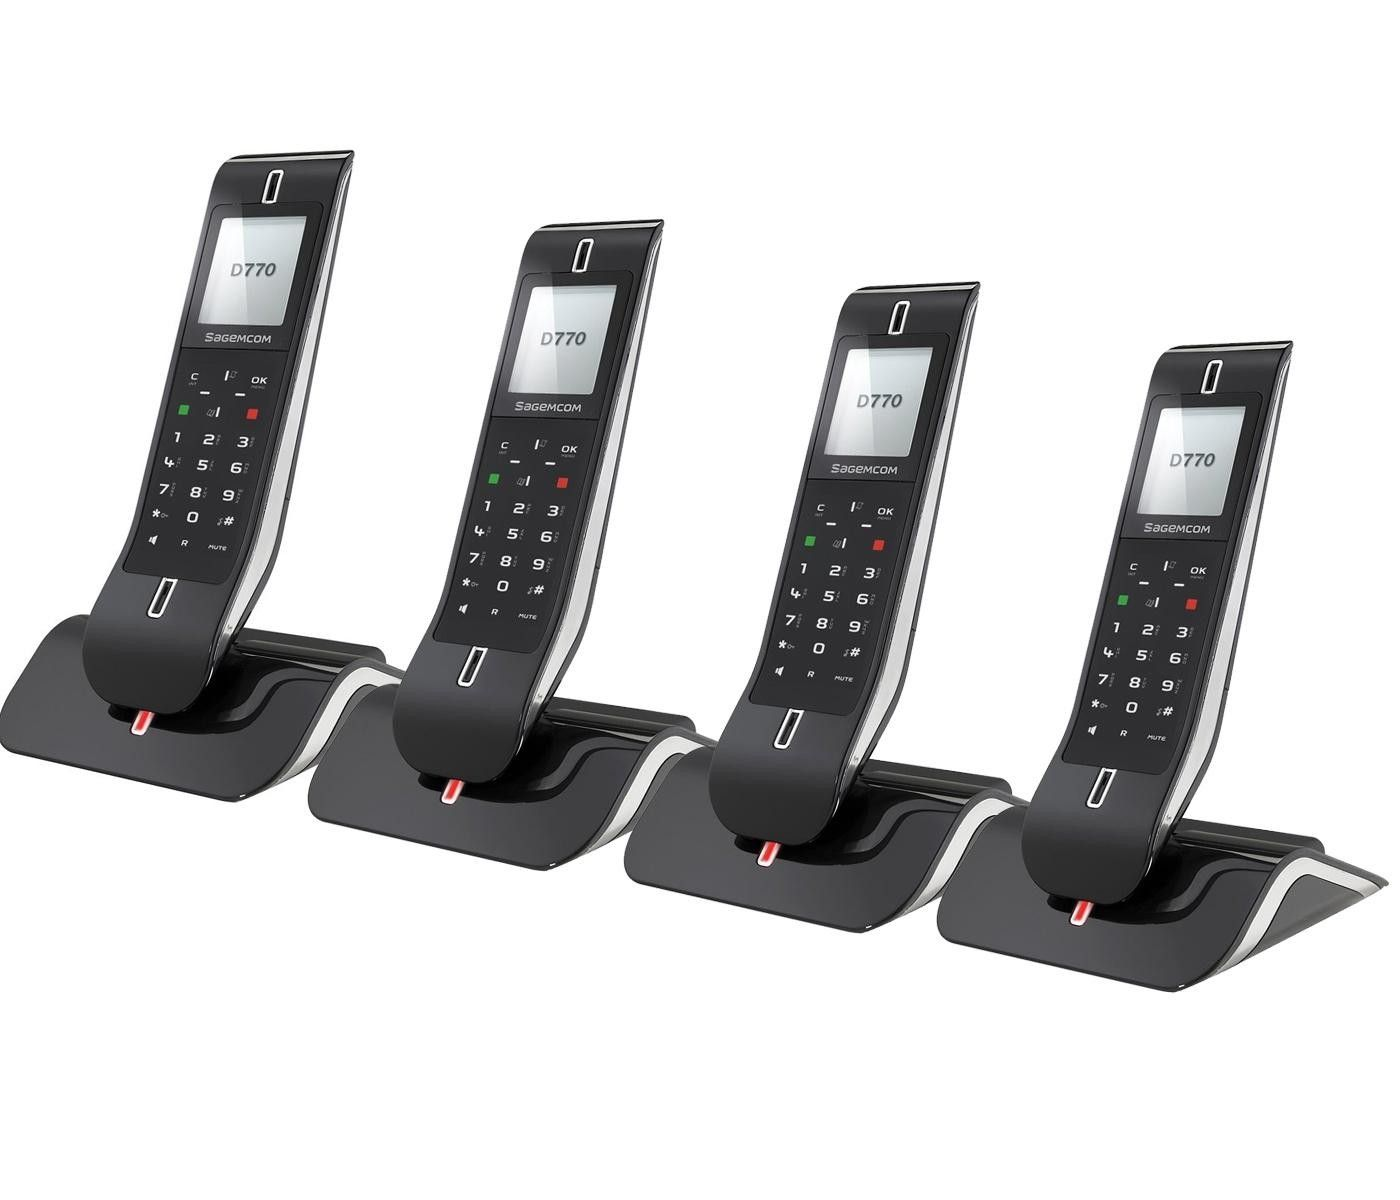 D770A Quad Digital Cordless Answerphone from